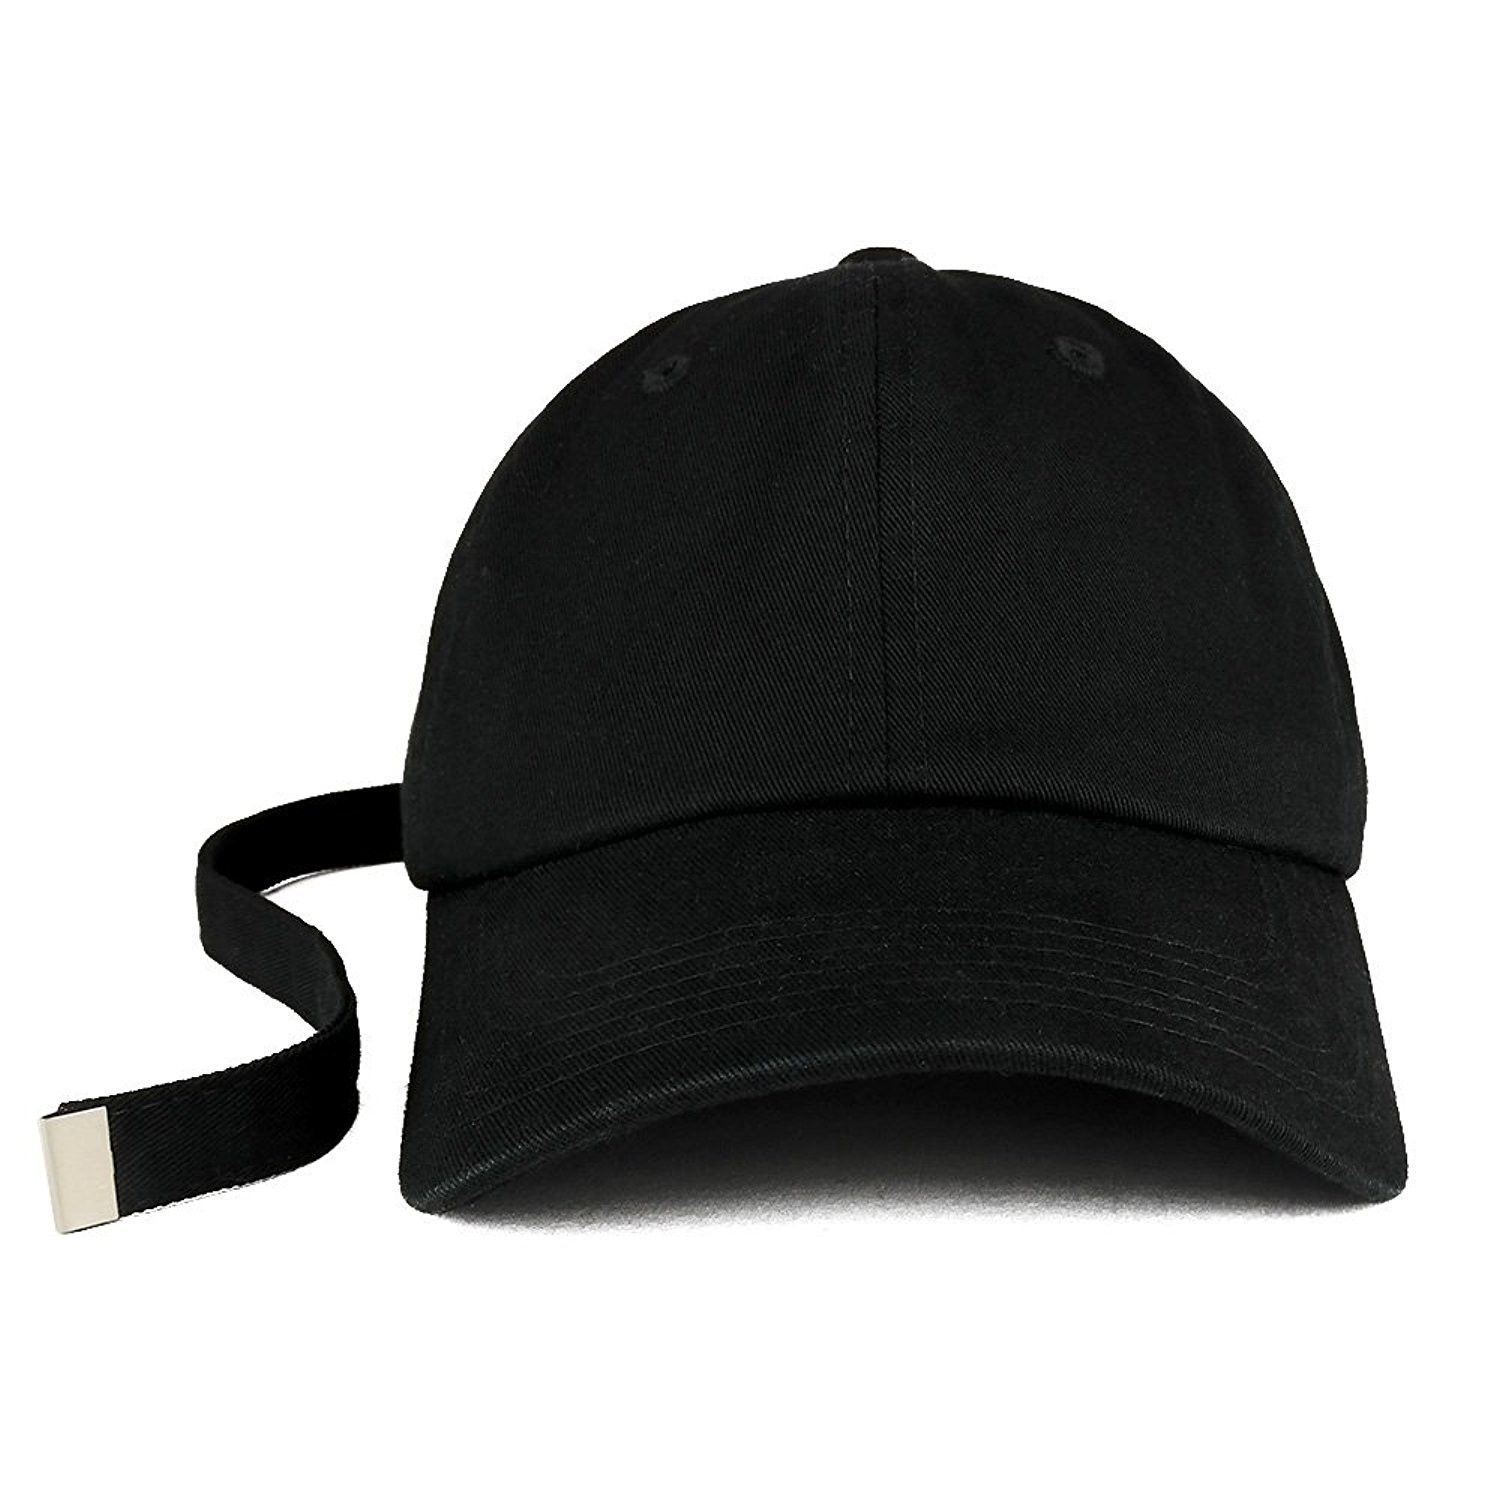 a5db1f6a6c7 Long Tail Strap Unstructured Adjustable Dad Hat - Black ...